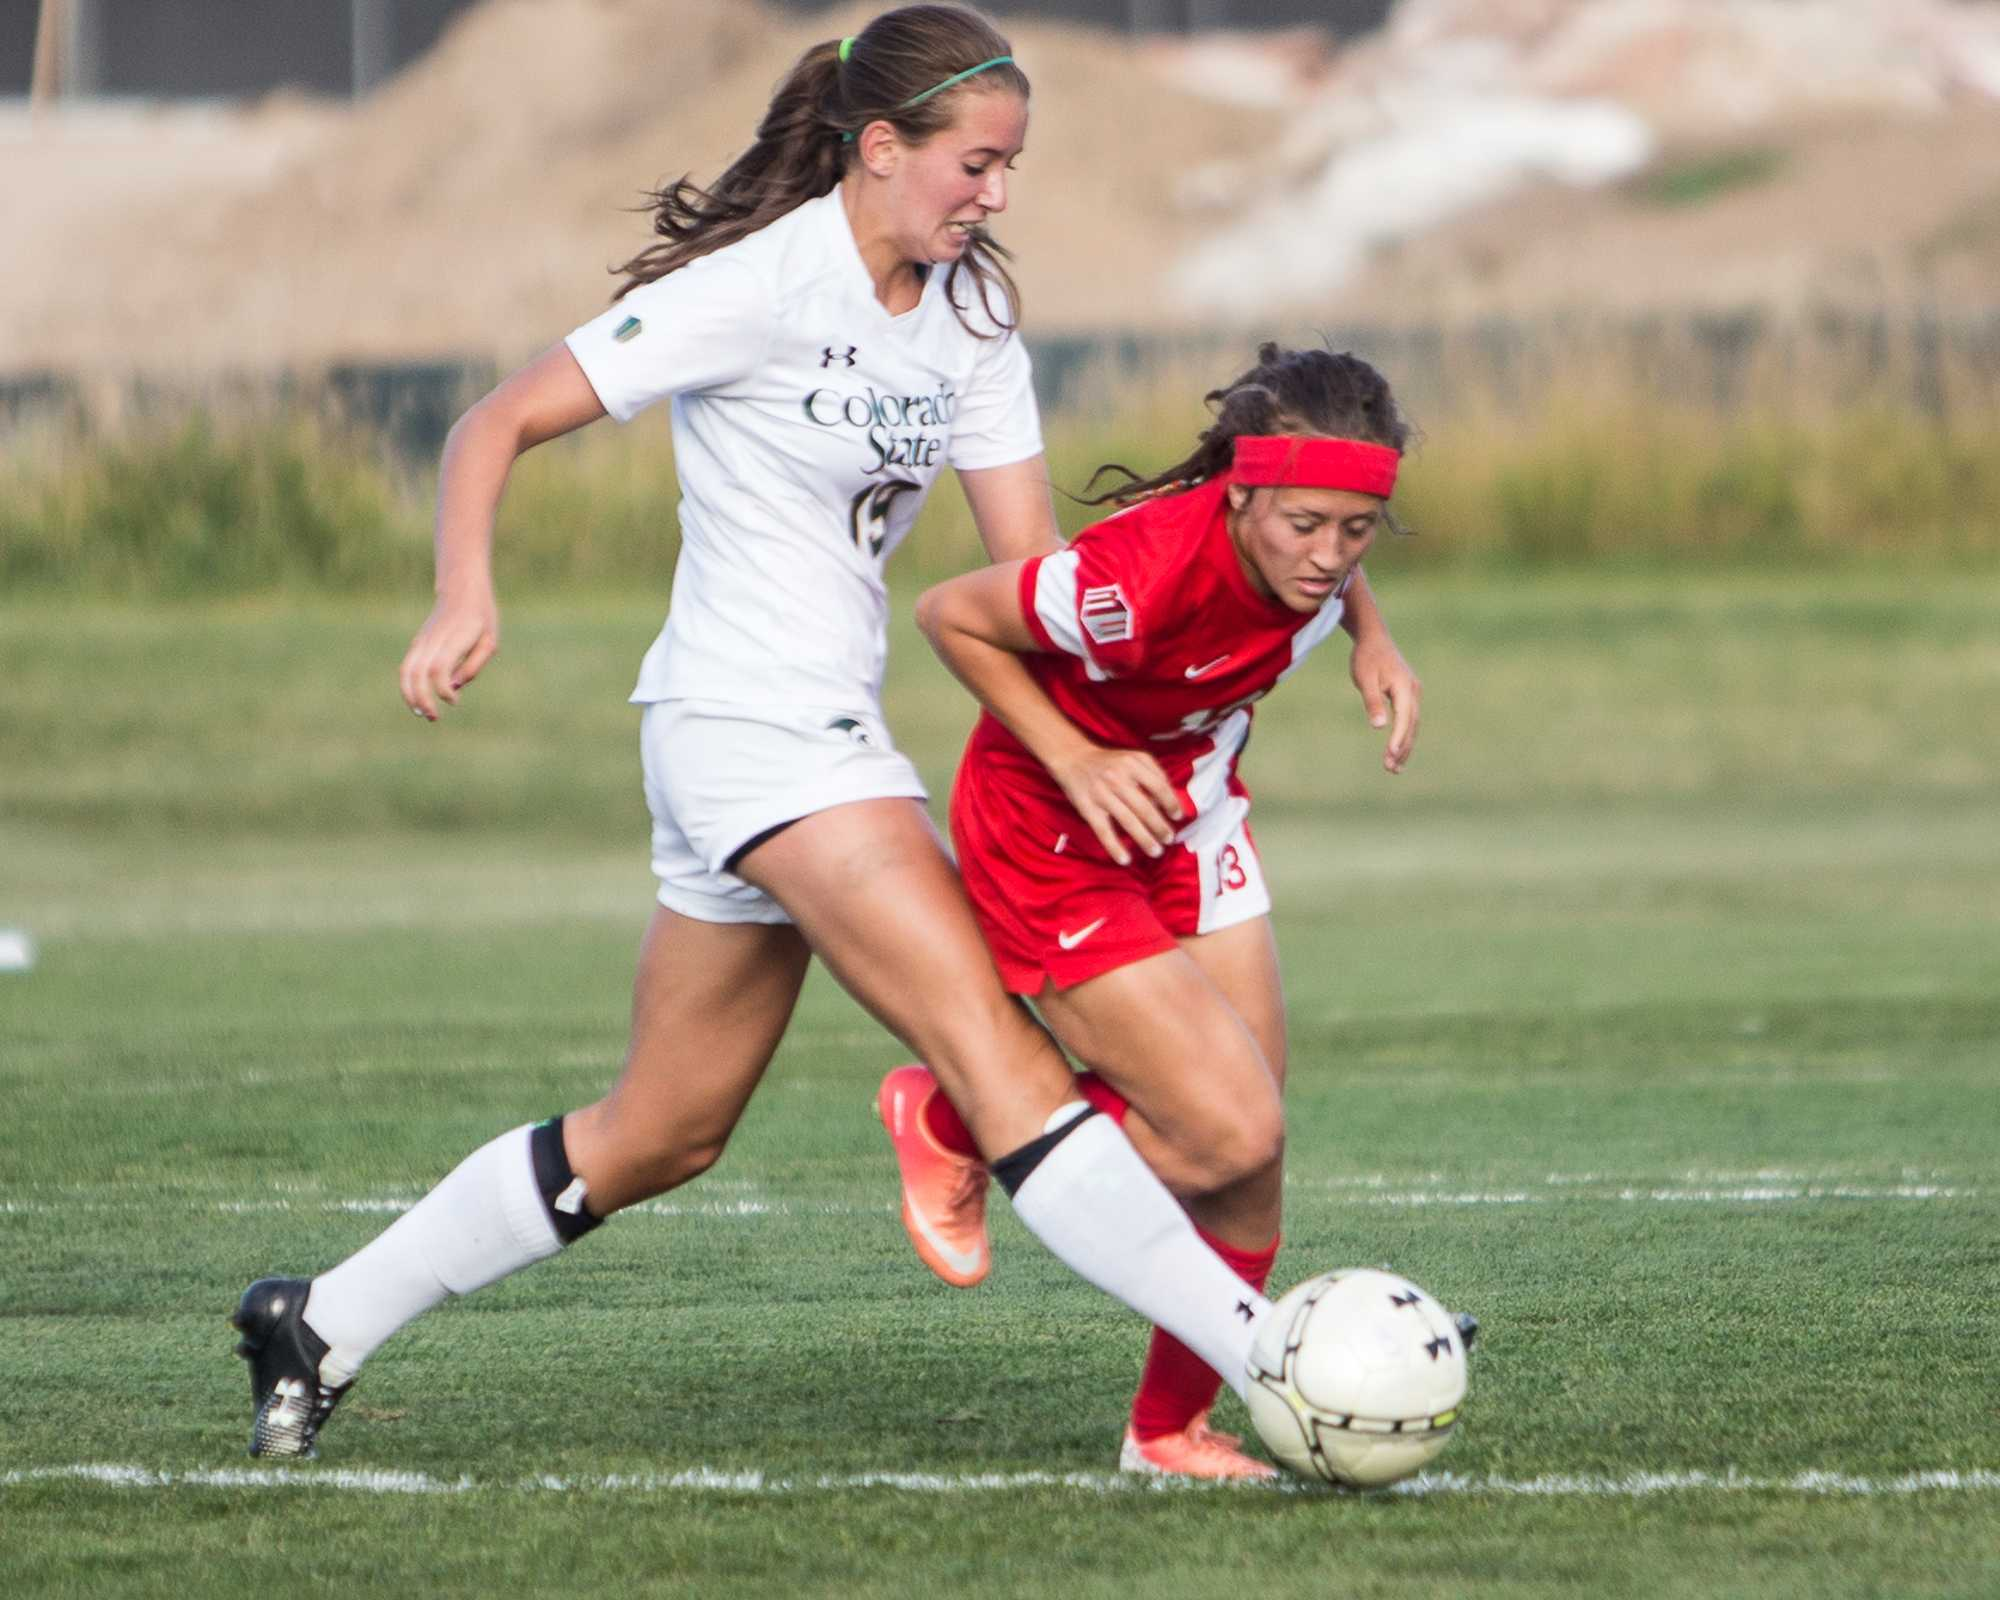 Colorado State women's soccer loses on penalty kick in ...